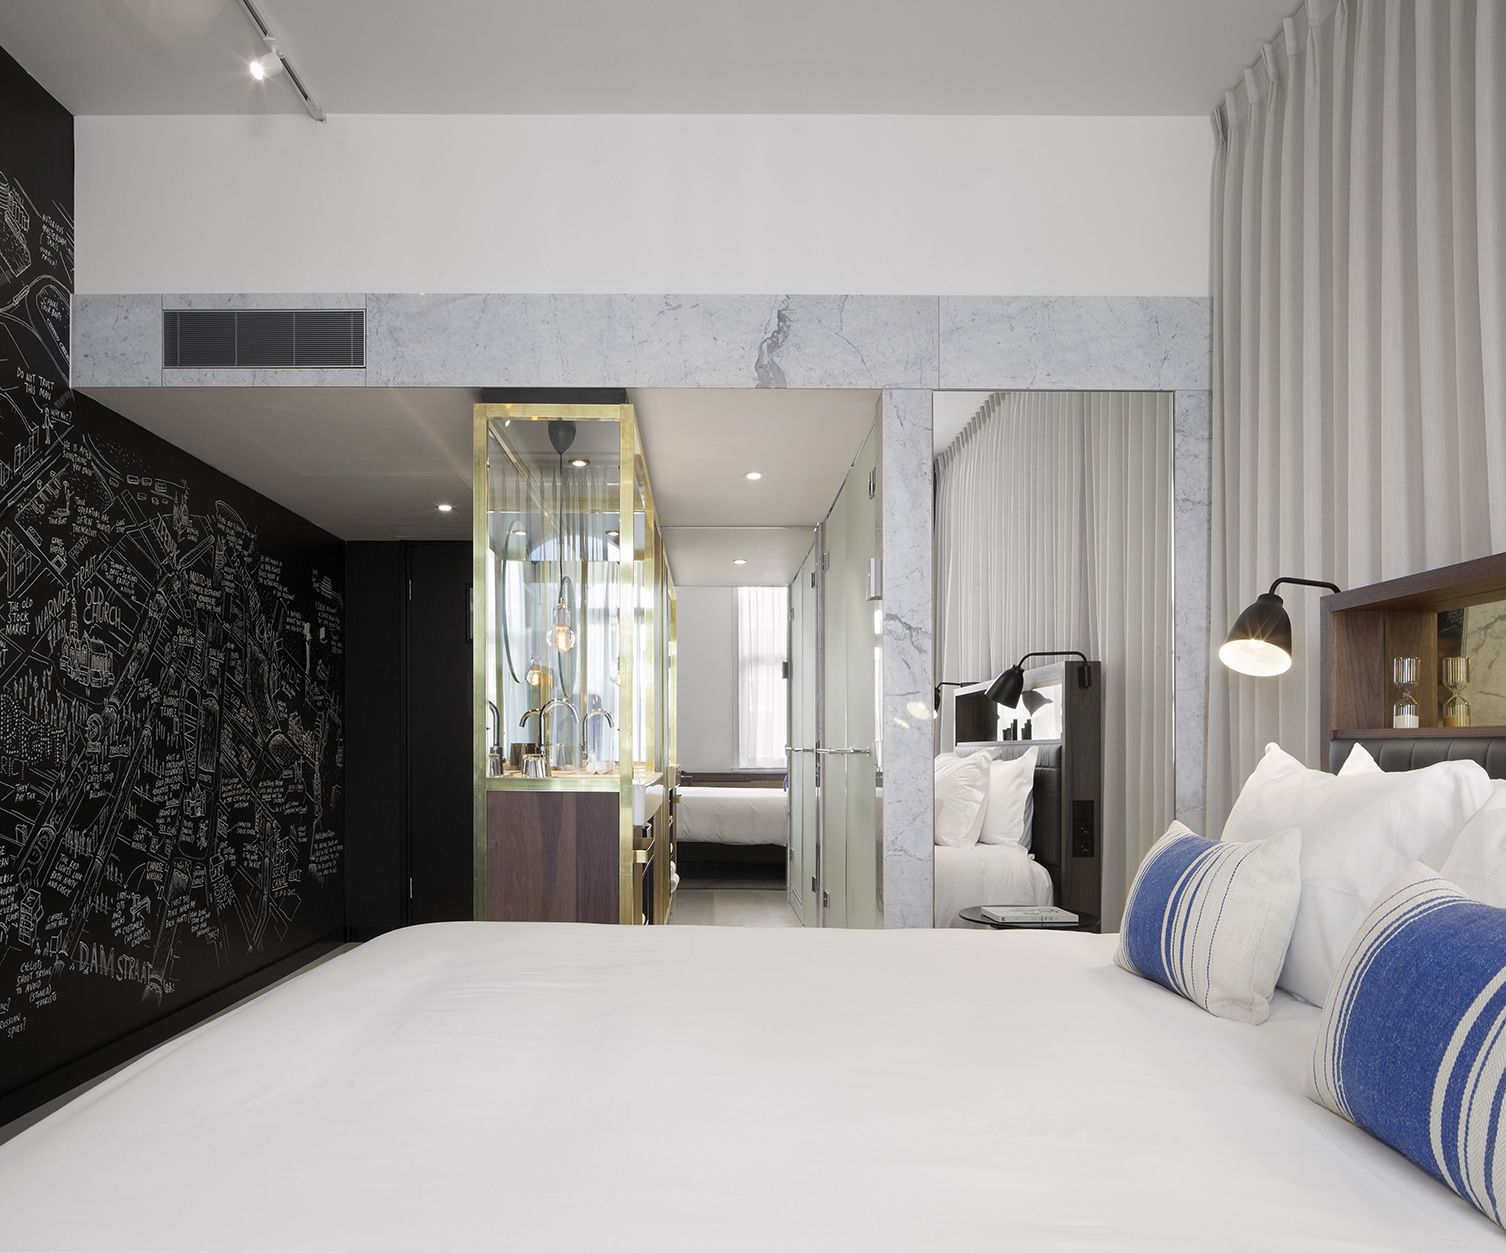 ink hotel amsterdam writes a stylish follow-up to the story of